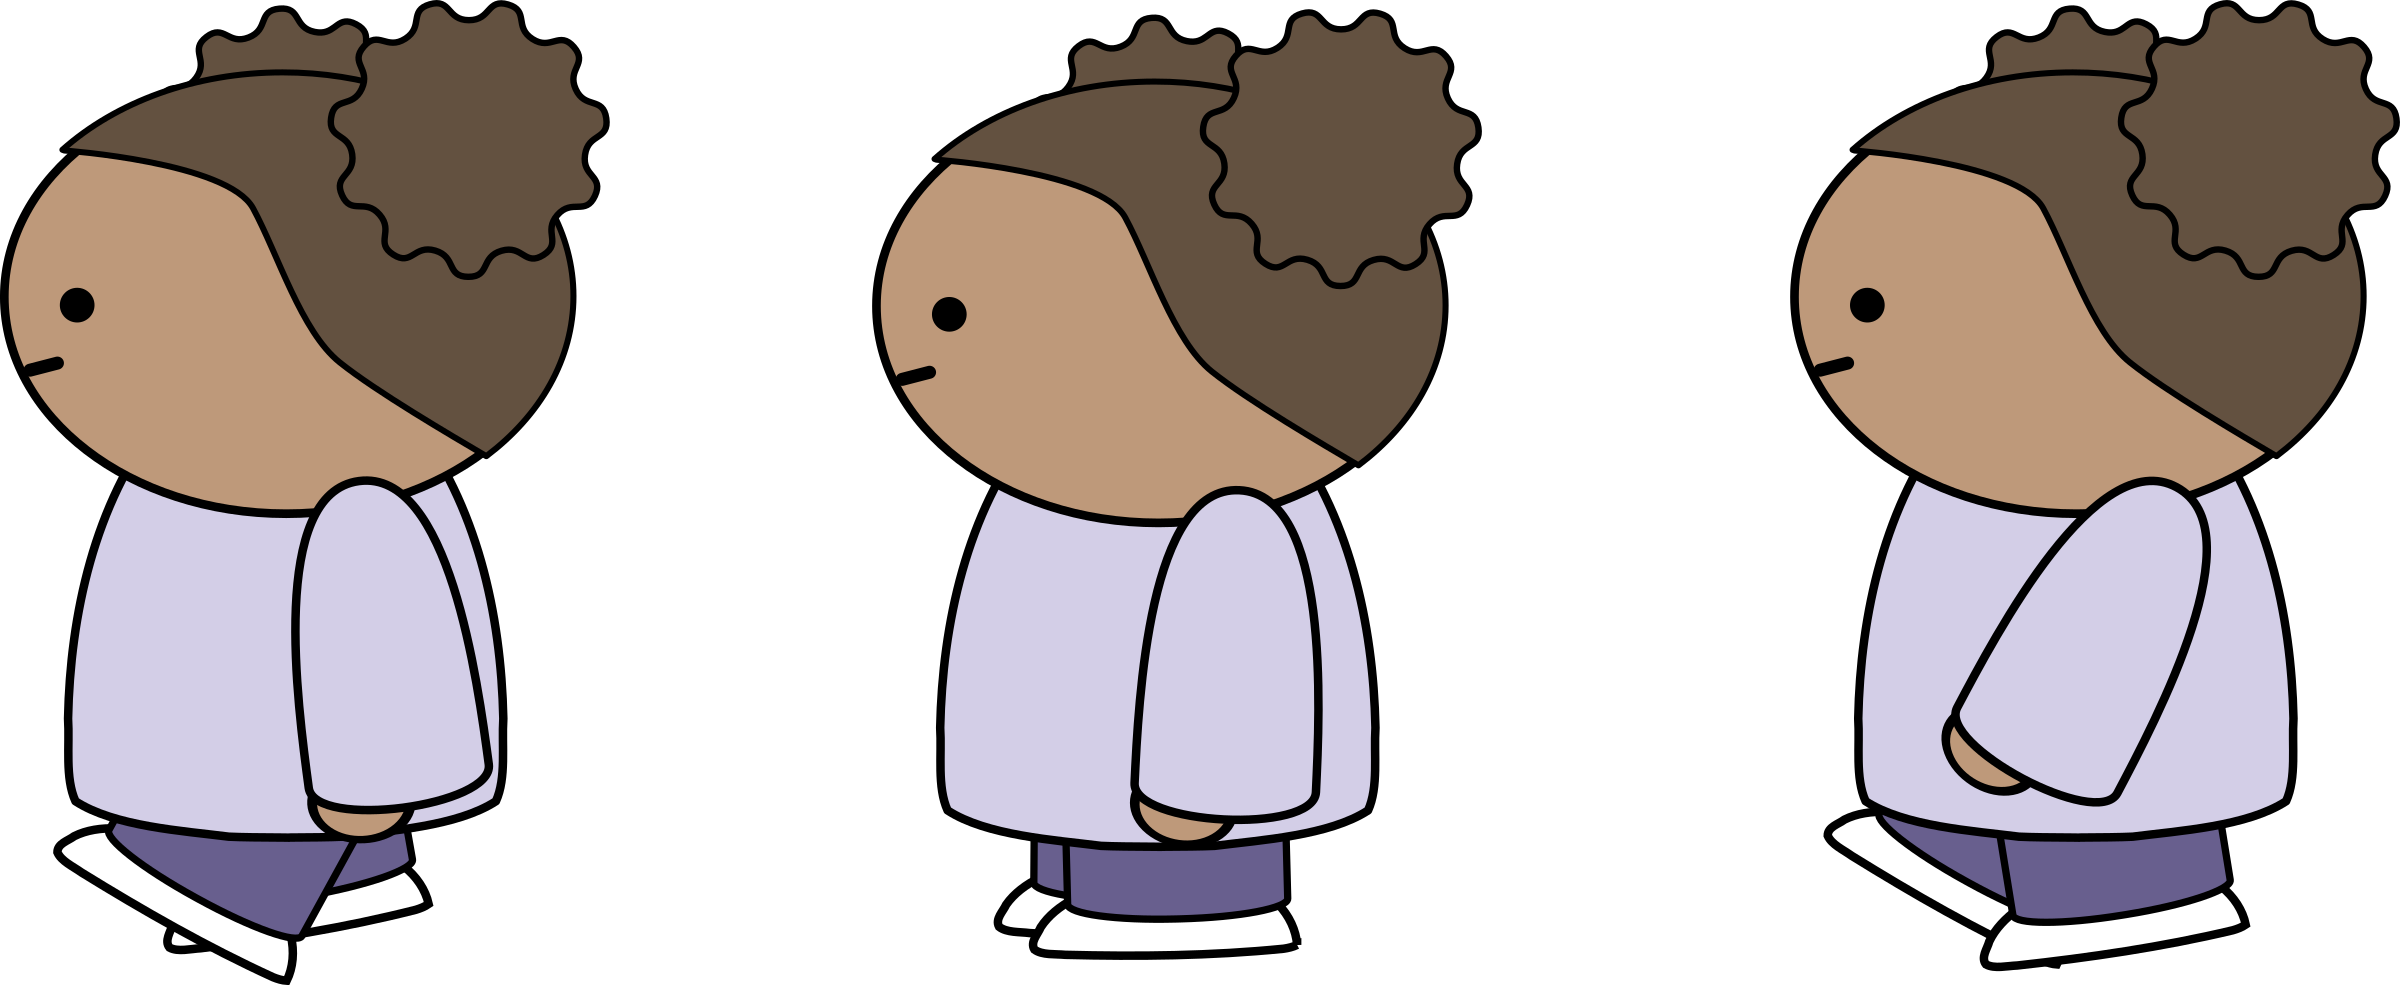 Lady clipart side view. Walking big image png